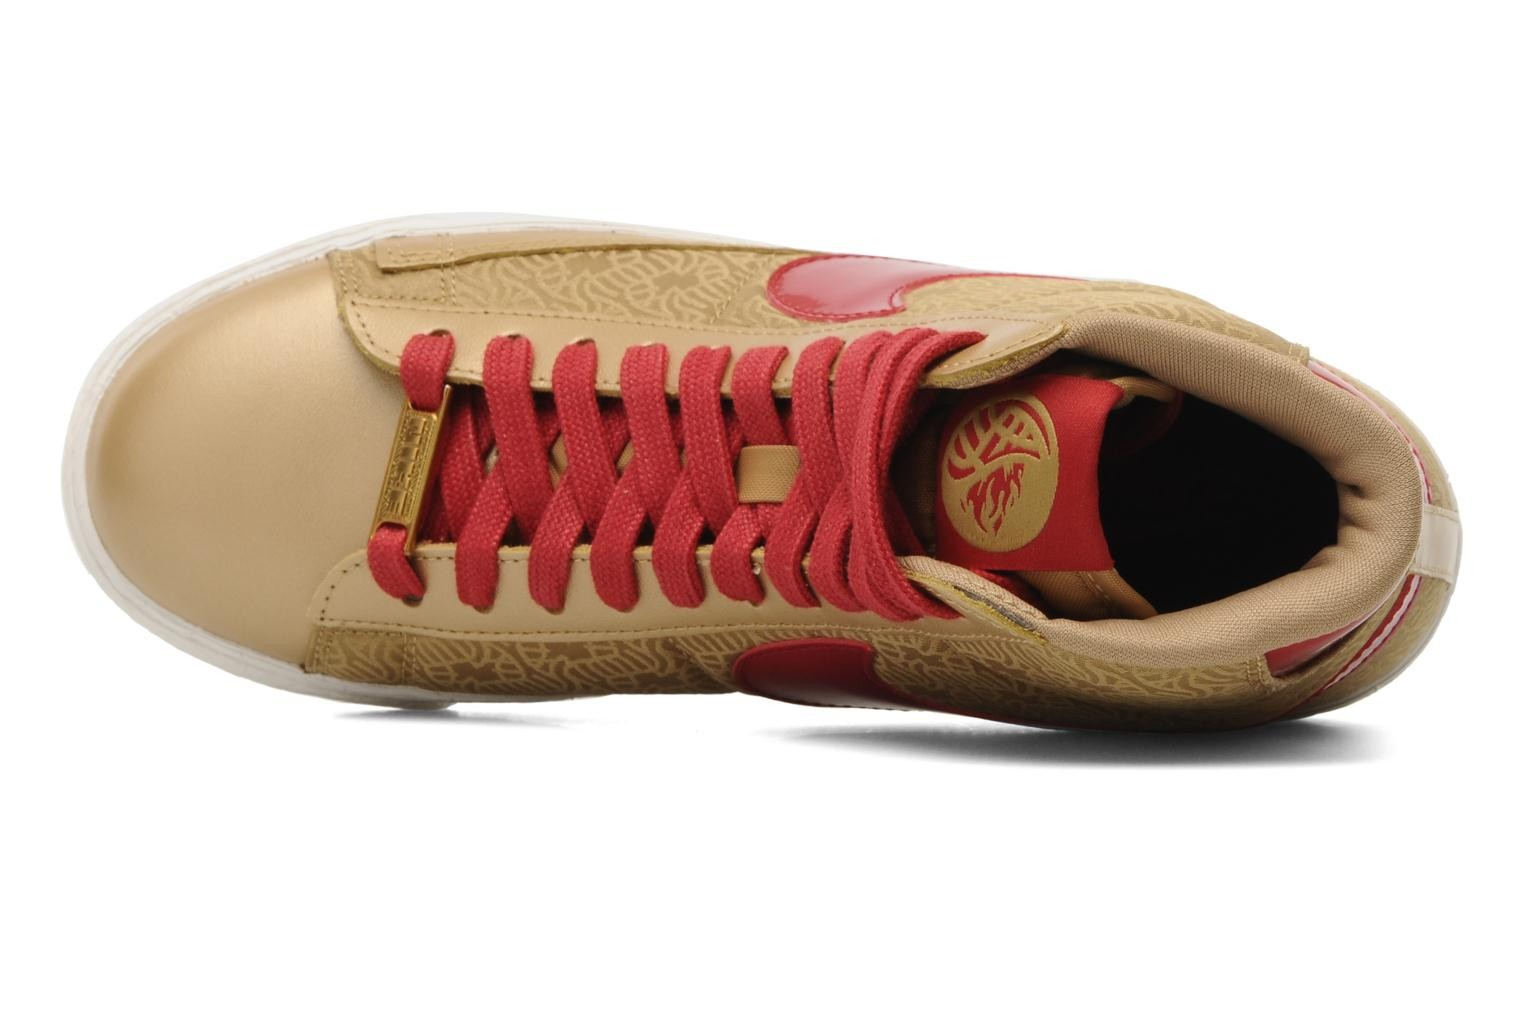 Nike WMNS Blazer Mid Yoth Metallic Gold Gym Red Womens High Top Sneakers